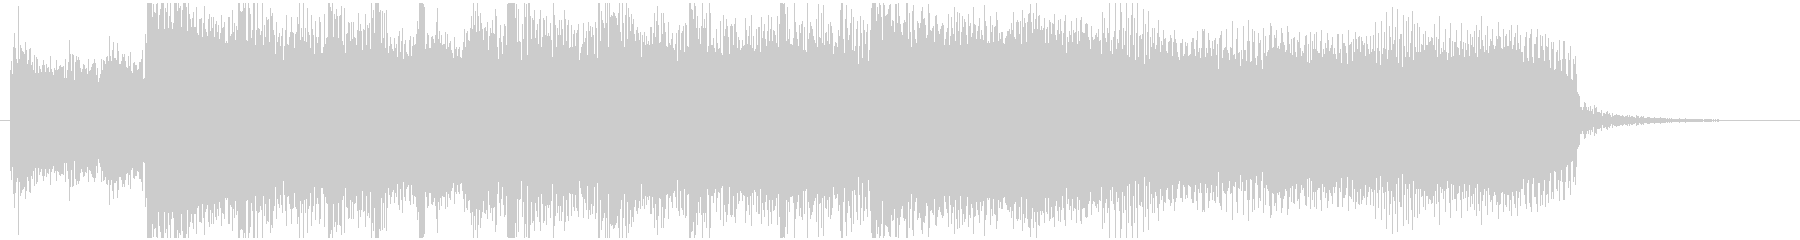 Fight To Live 10 sec's unreproduced waveform